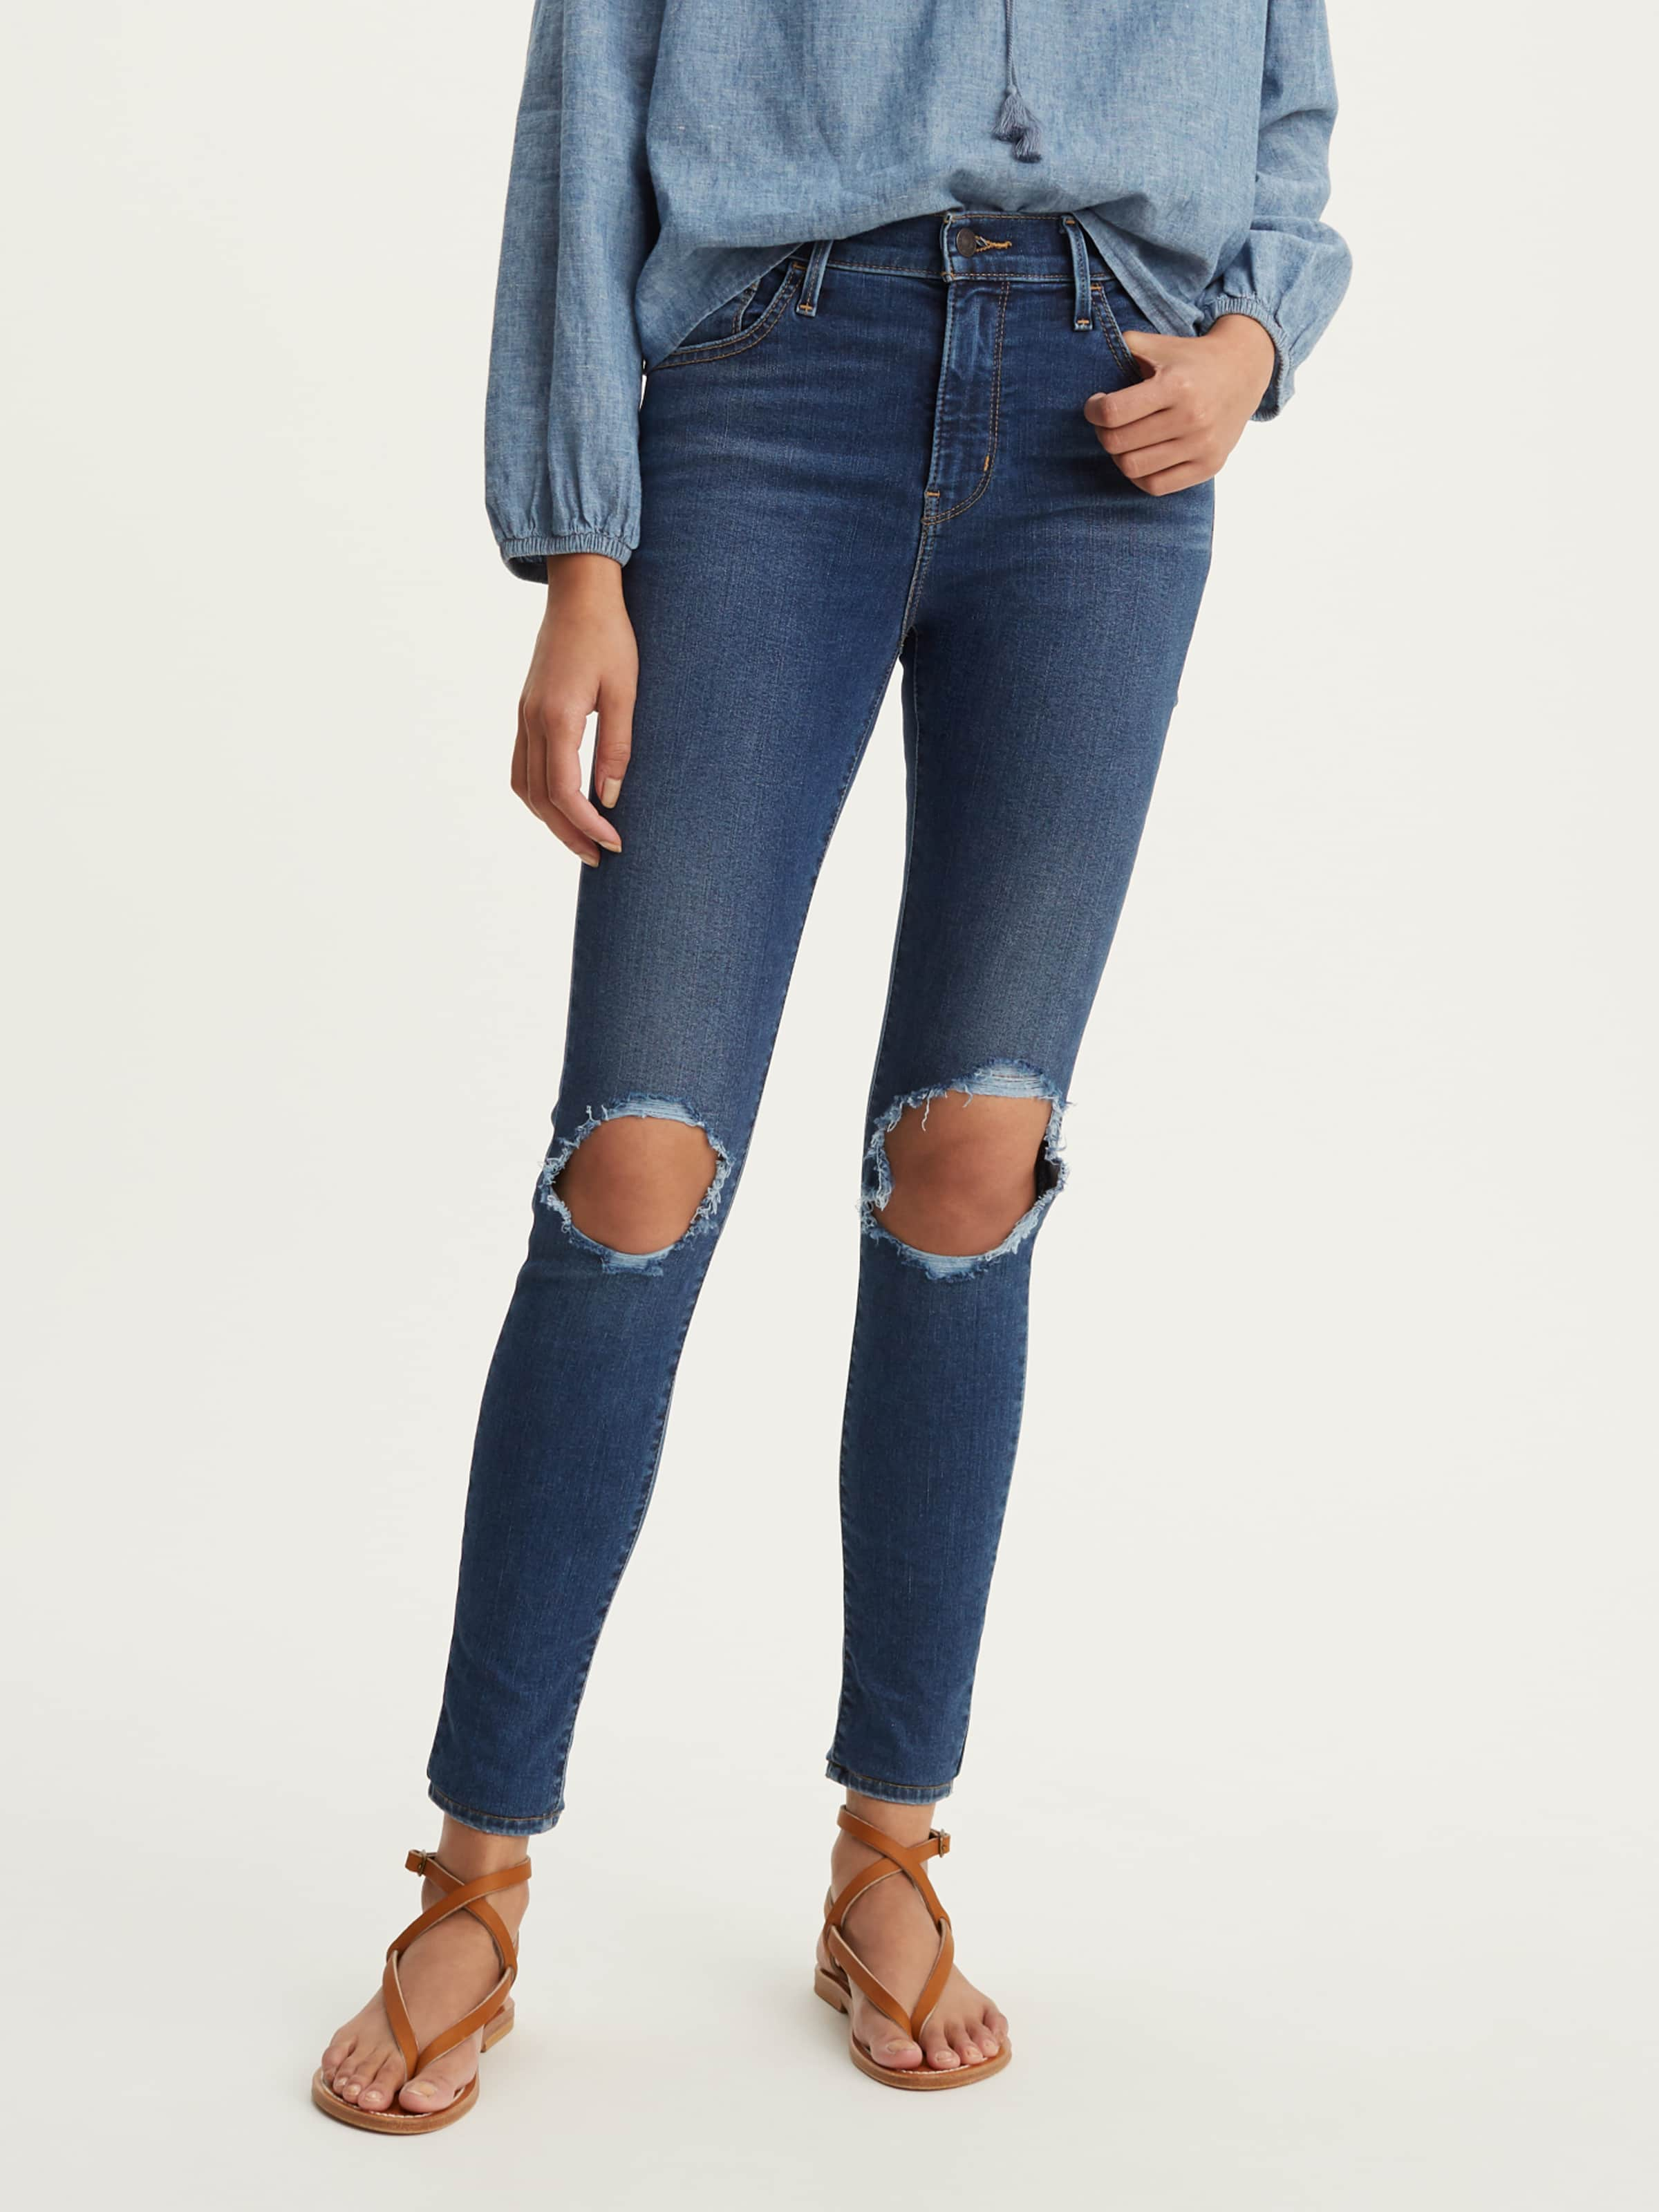 Image of Just Jeans 720 High Rise Super Skinny In Shake That Thang